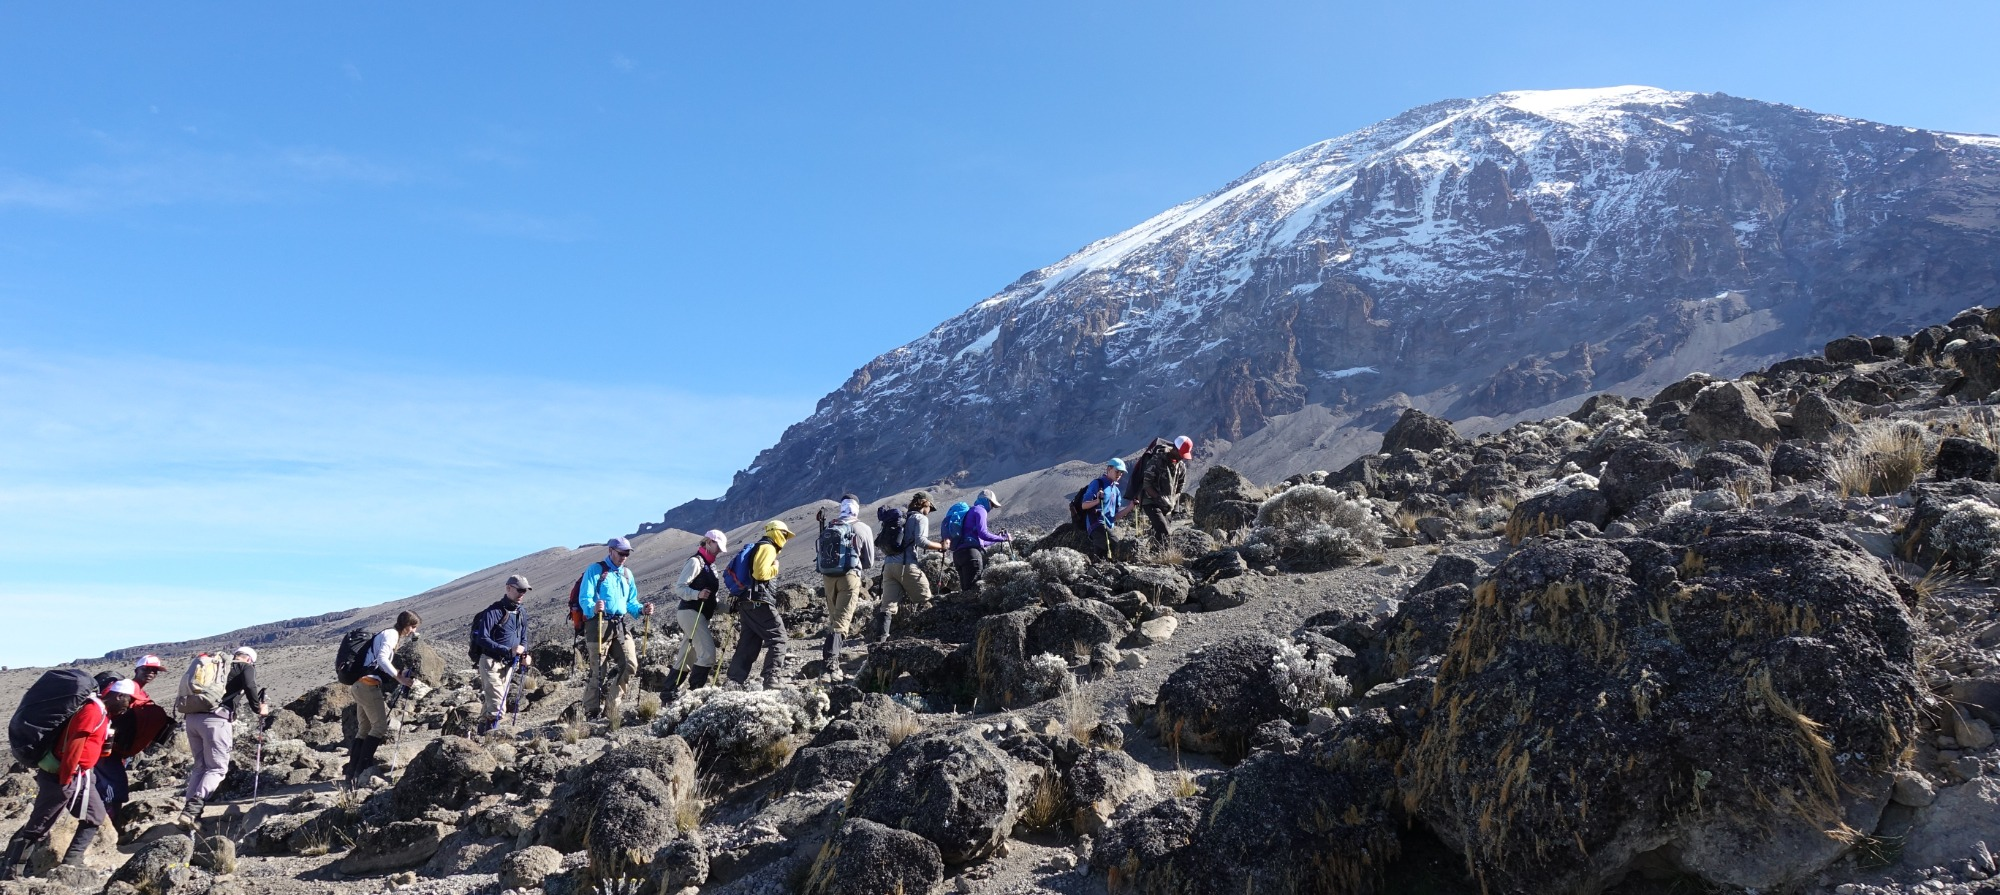 6 Reasons to Climb Kilimanjaro with World Wide Trekking